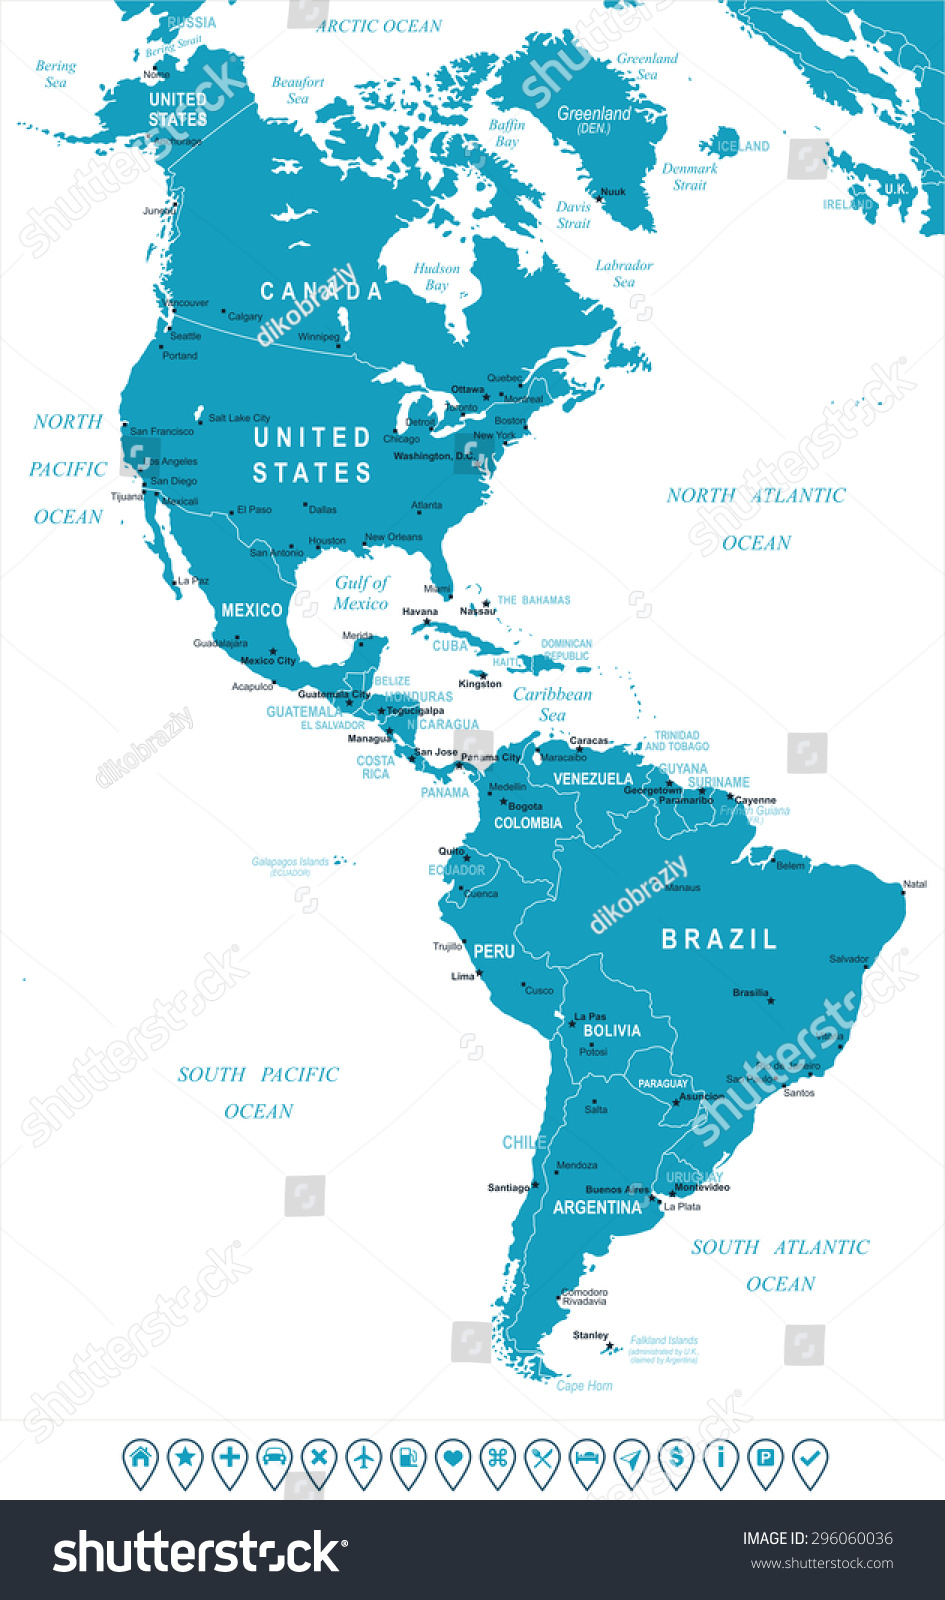 Columbia South America Map Search Maps Uv Mapping - Colombia map south america